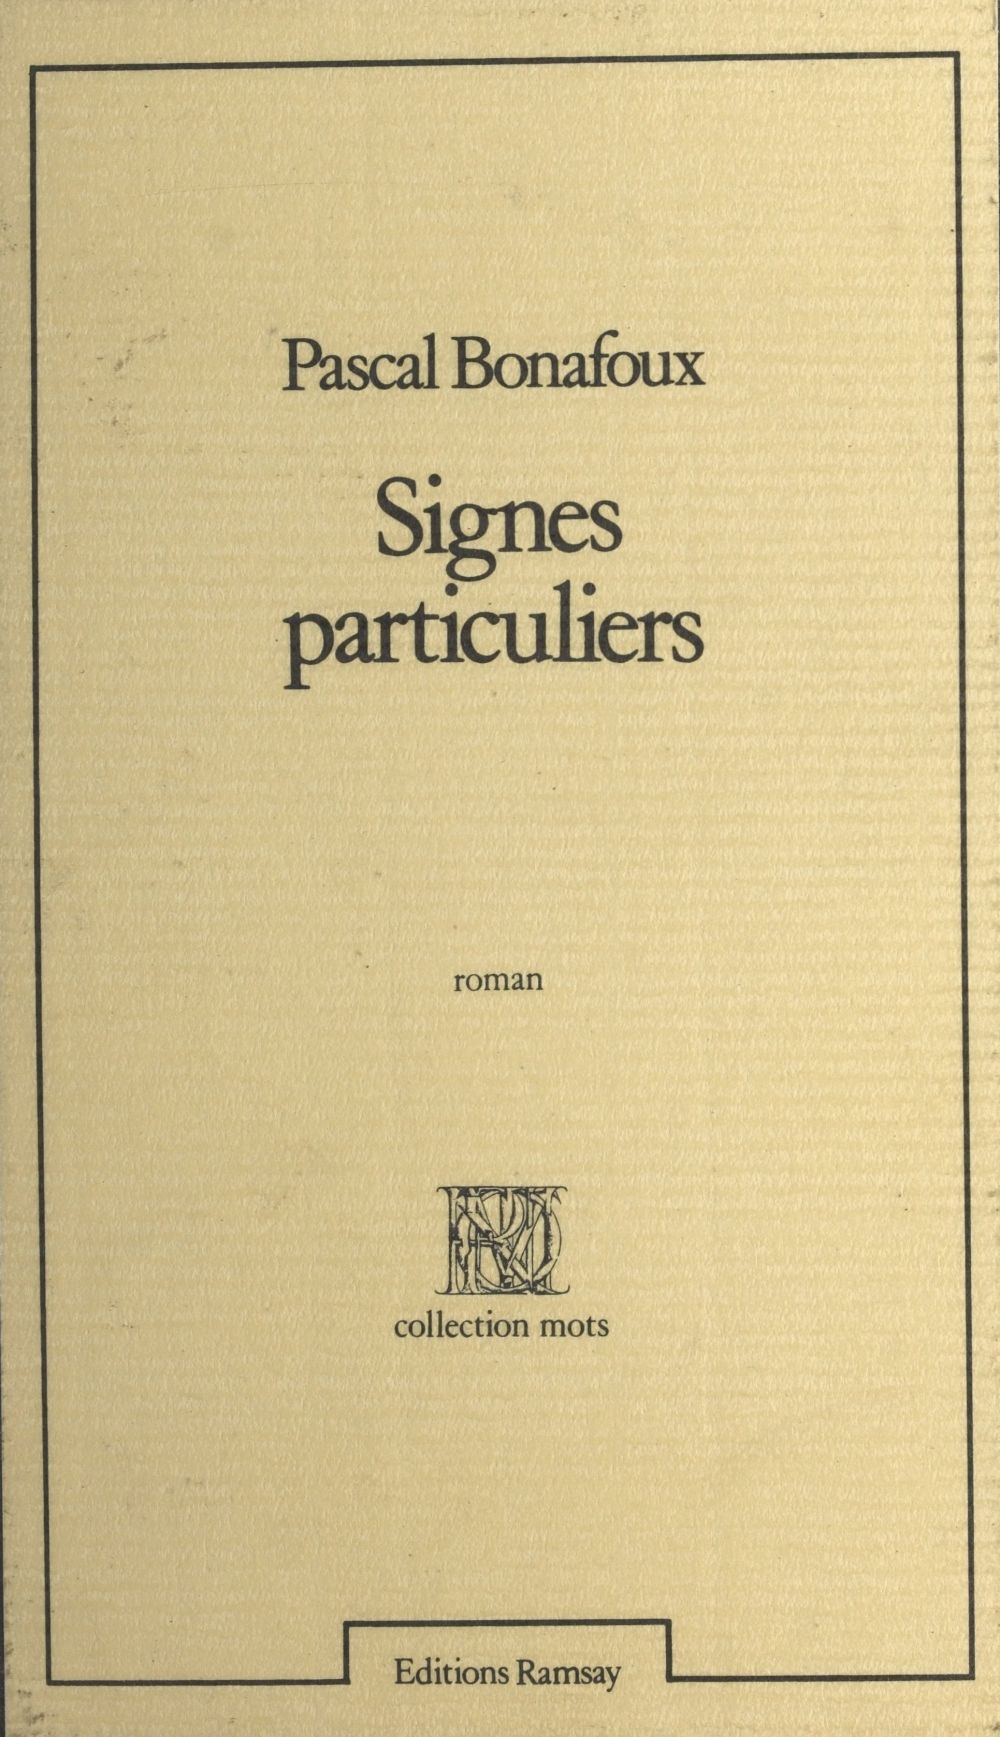 Signes particuliers